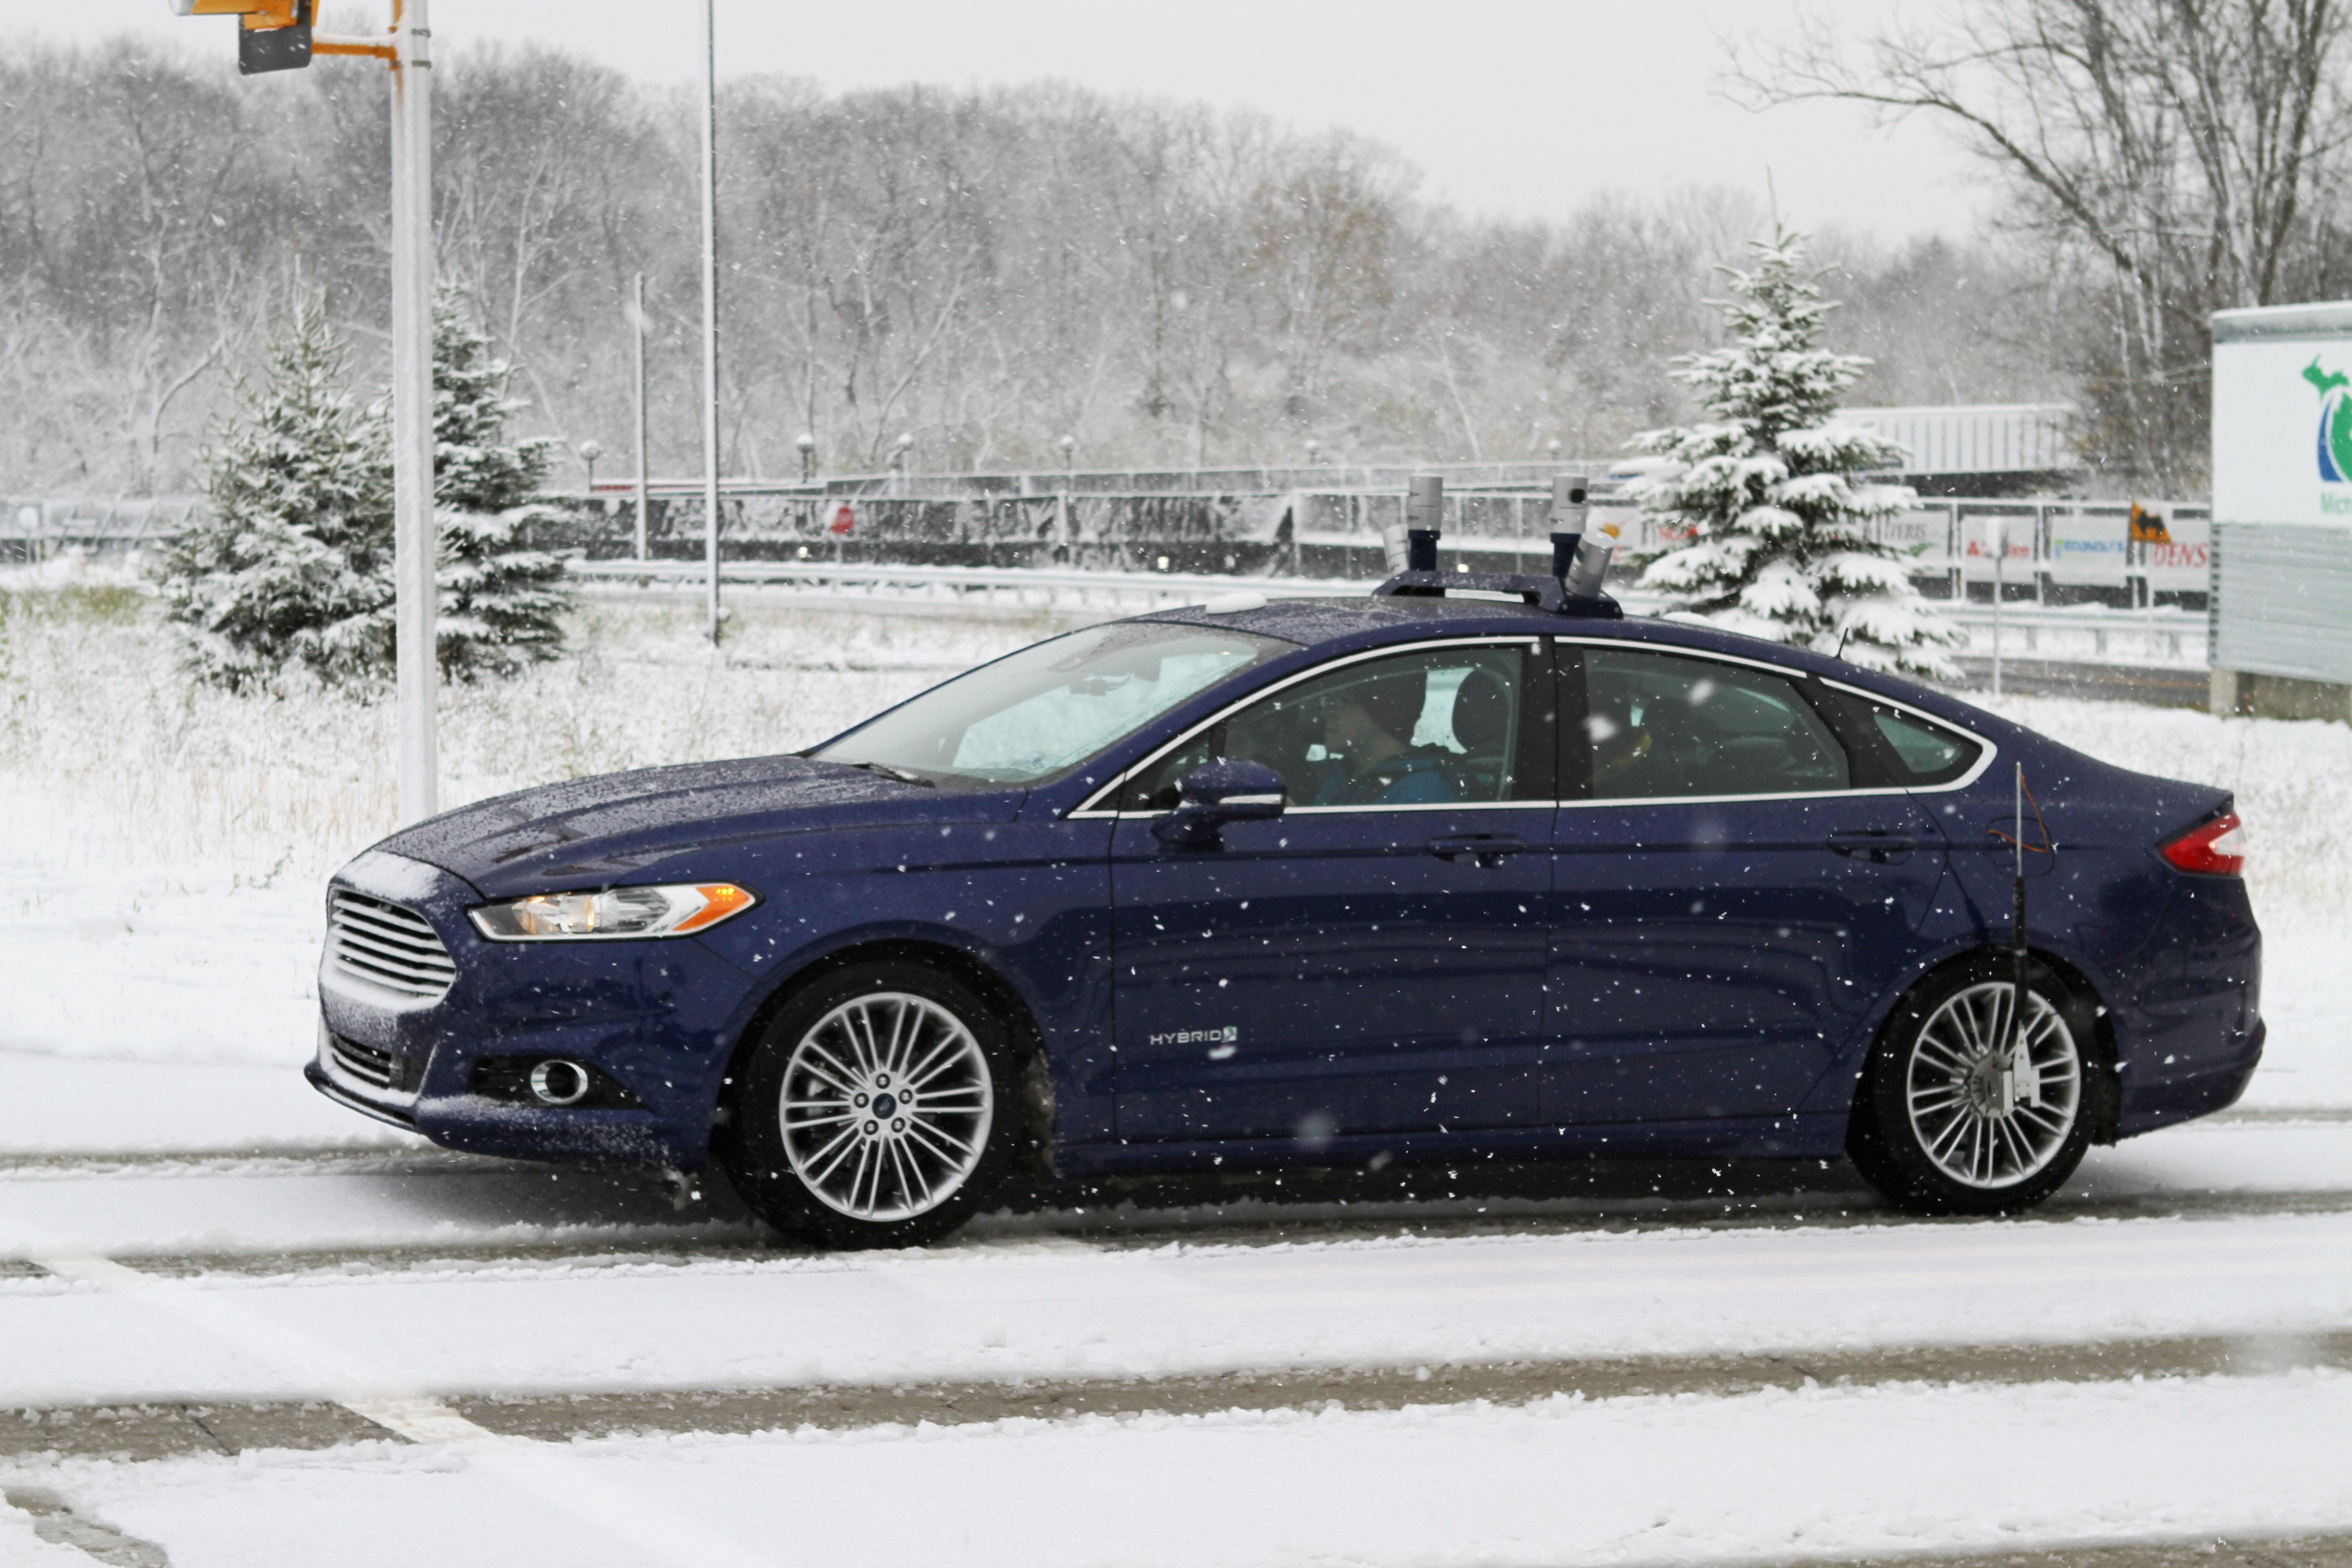 Ford is testing its self-driving cars in the snow.